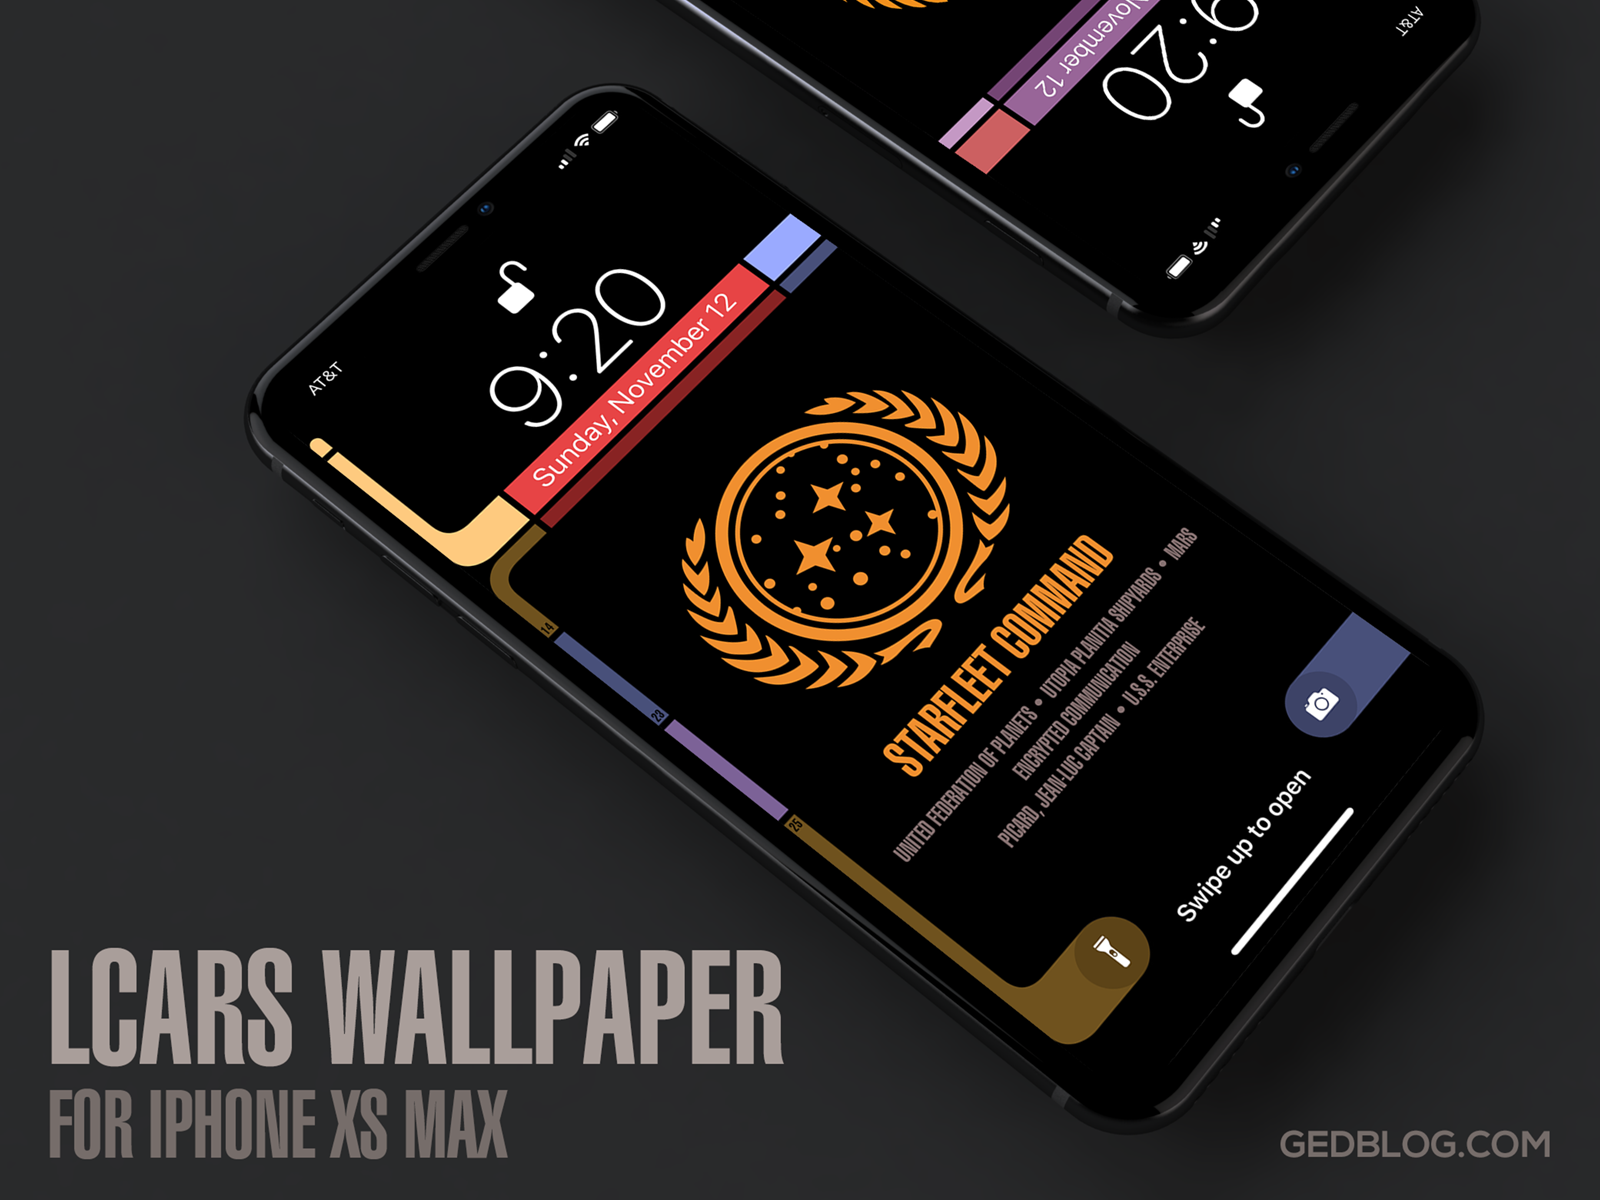 Star Trek Tng Lcars Wallpaper For Iphone Xs Max By Gedeon Maheux